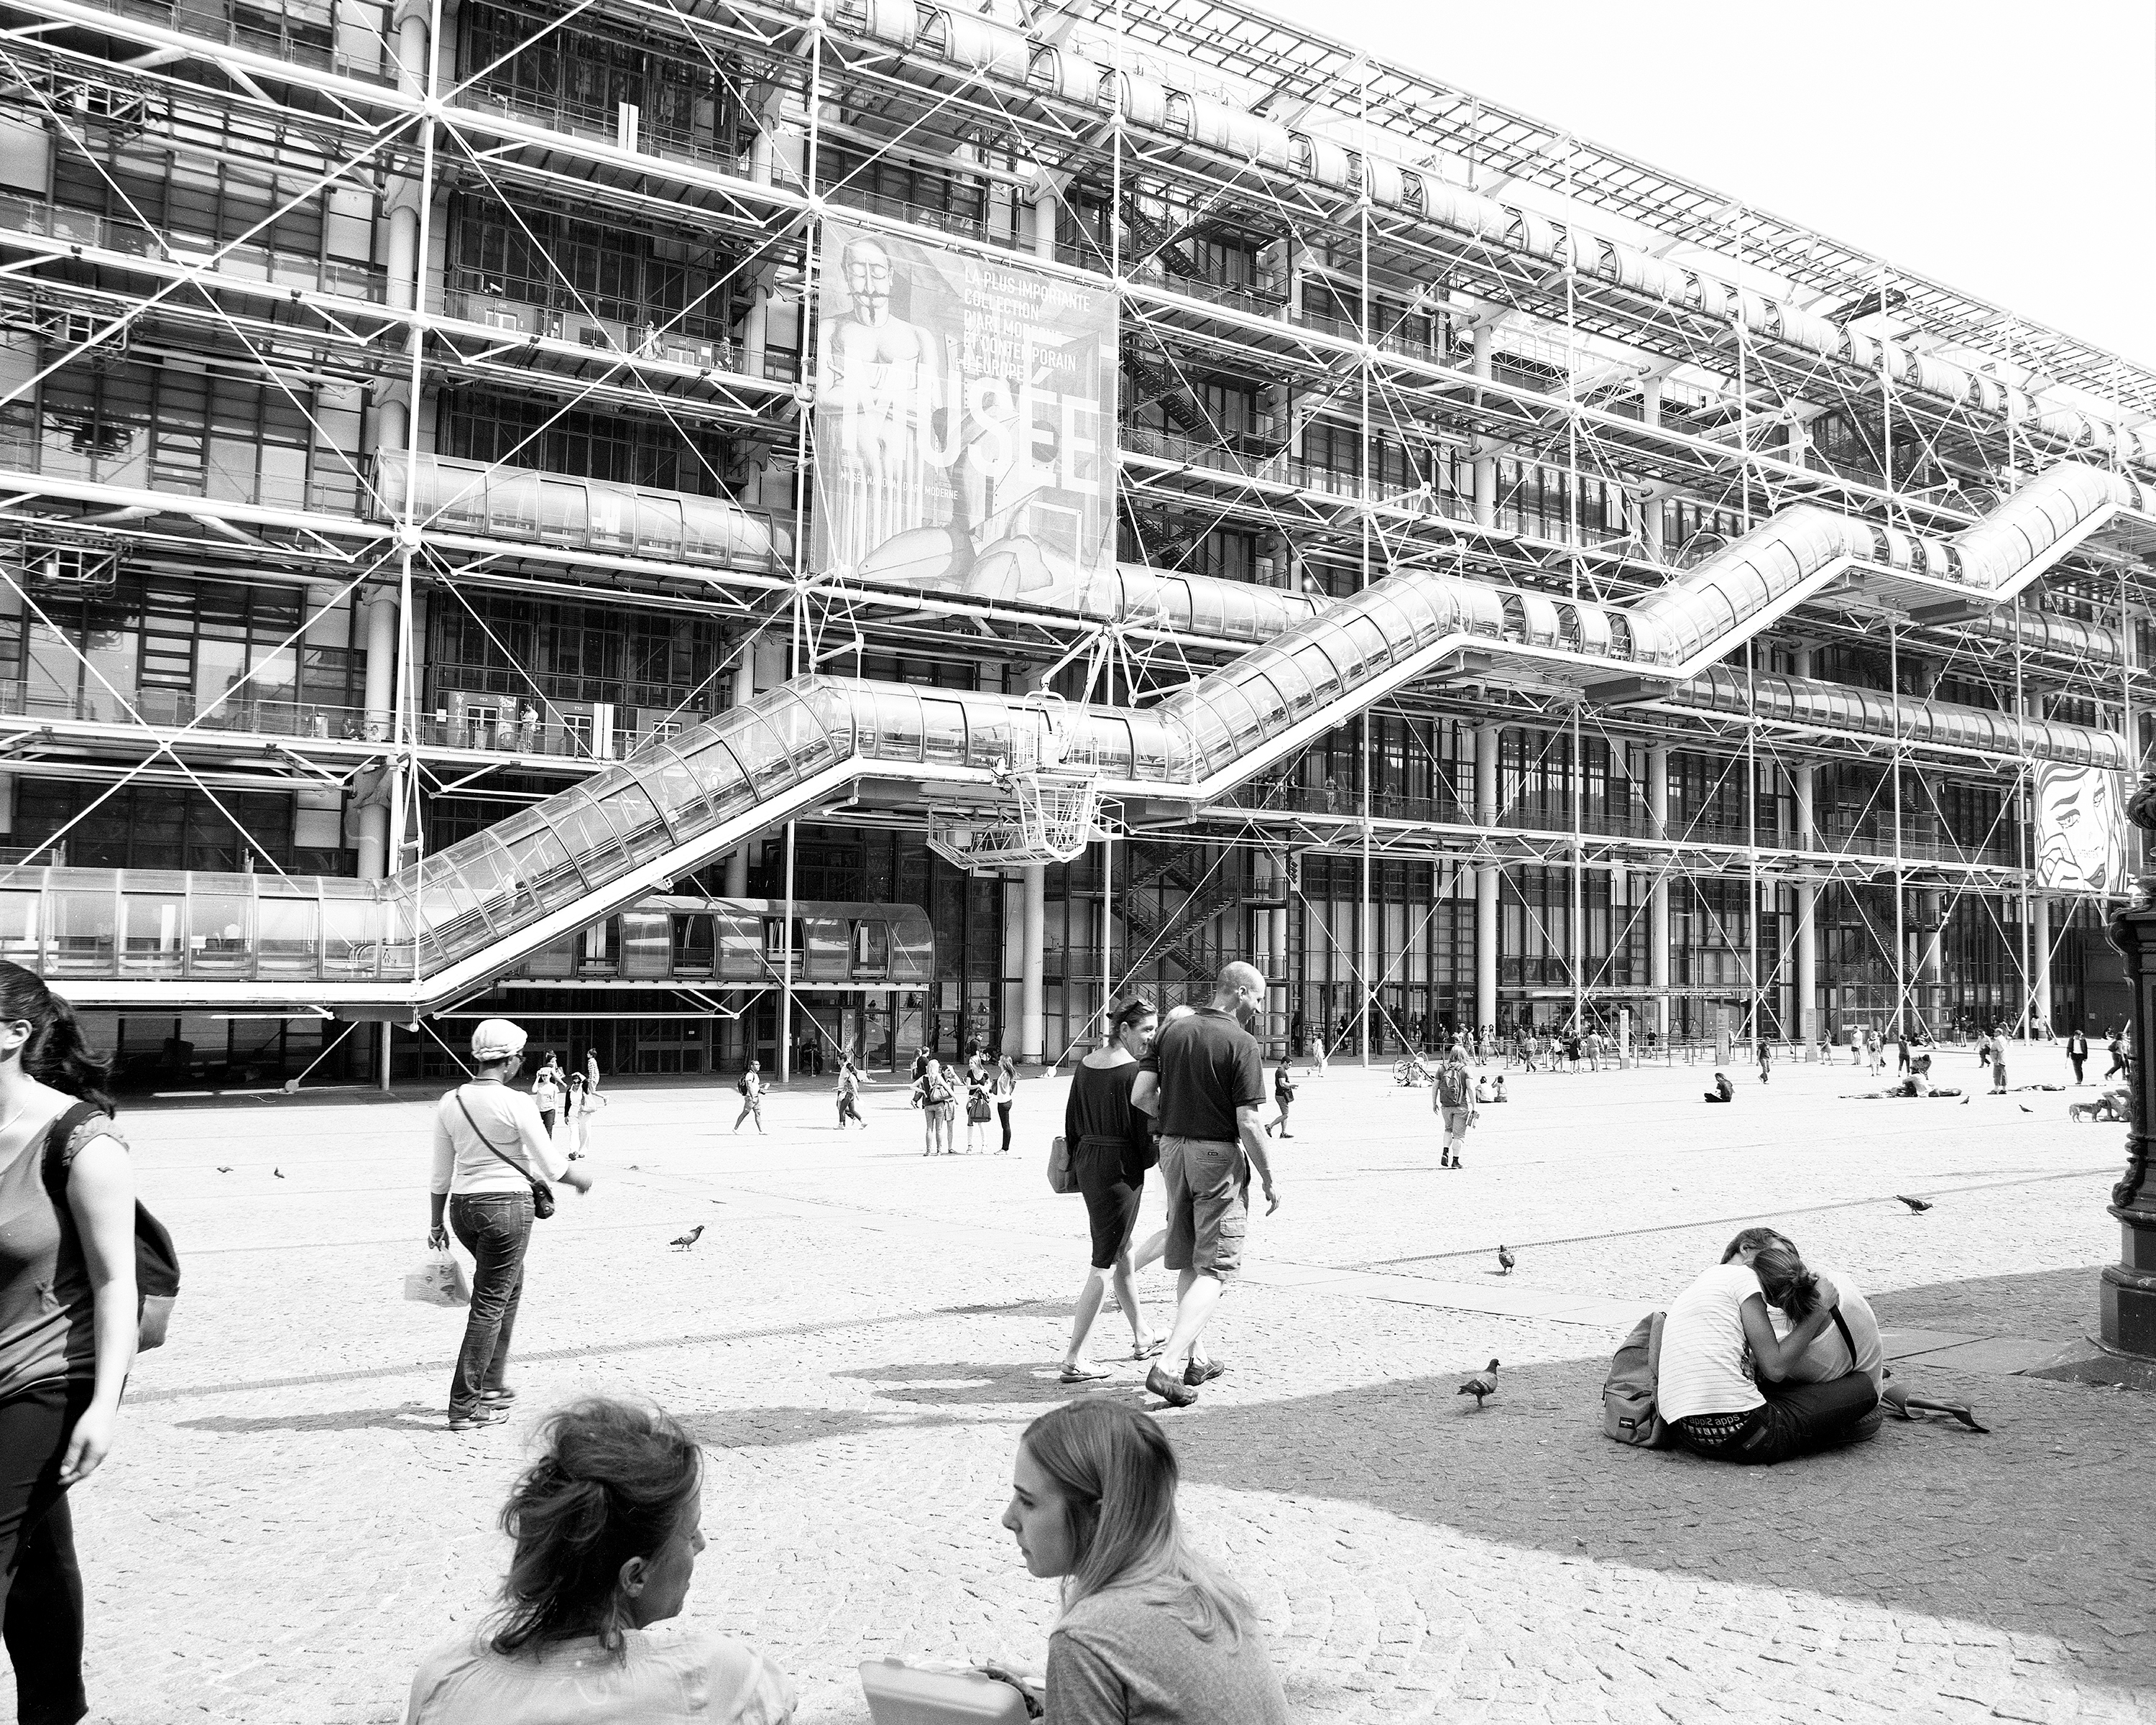 pompidou                 centre people paris france museum modern art black and white                 street Photography